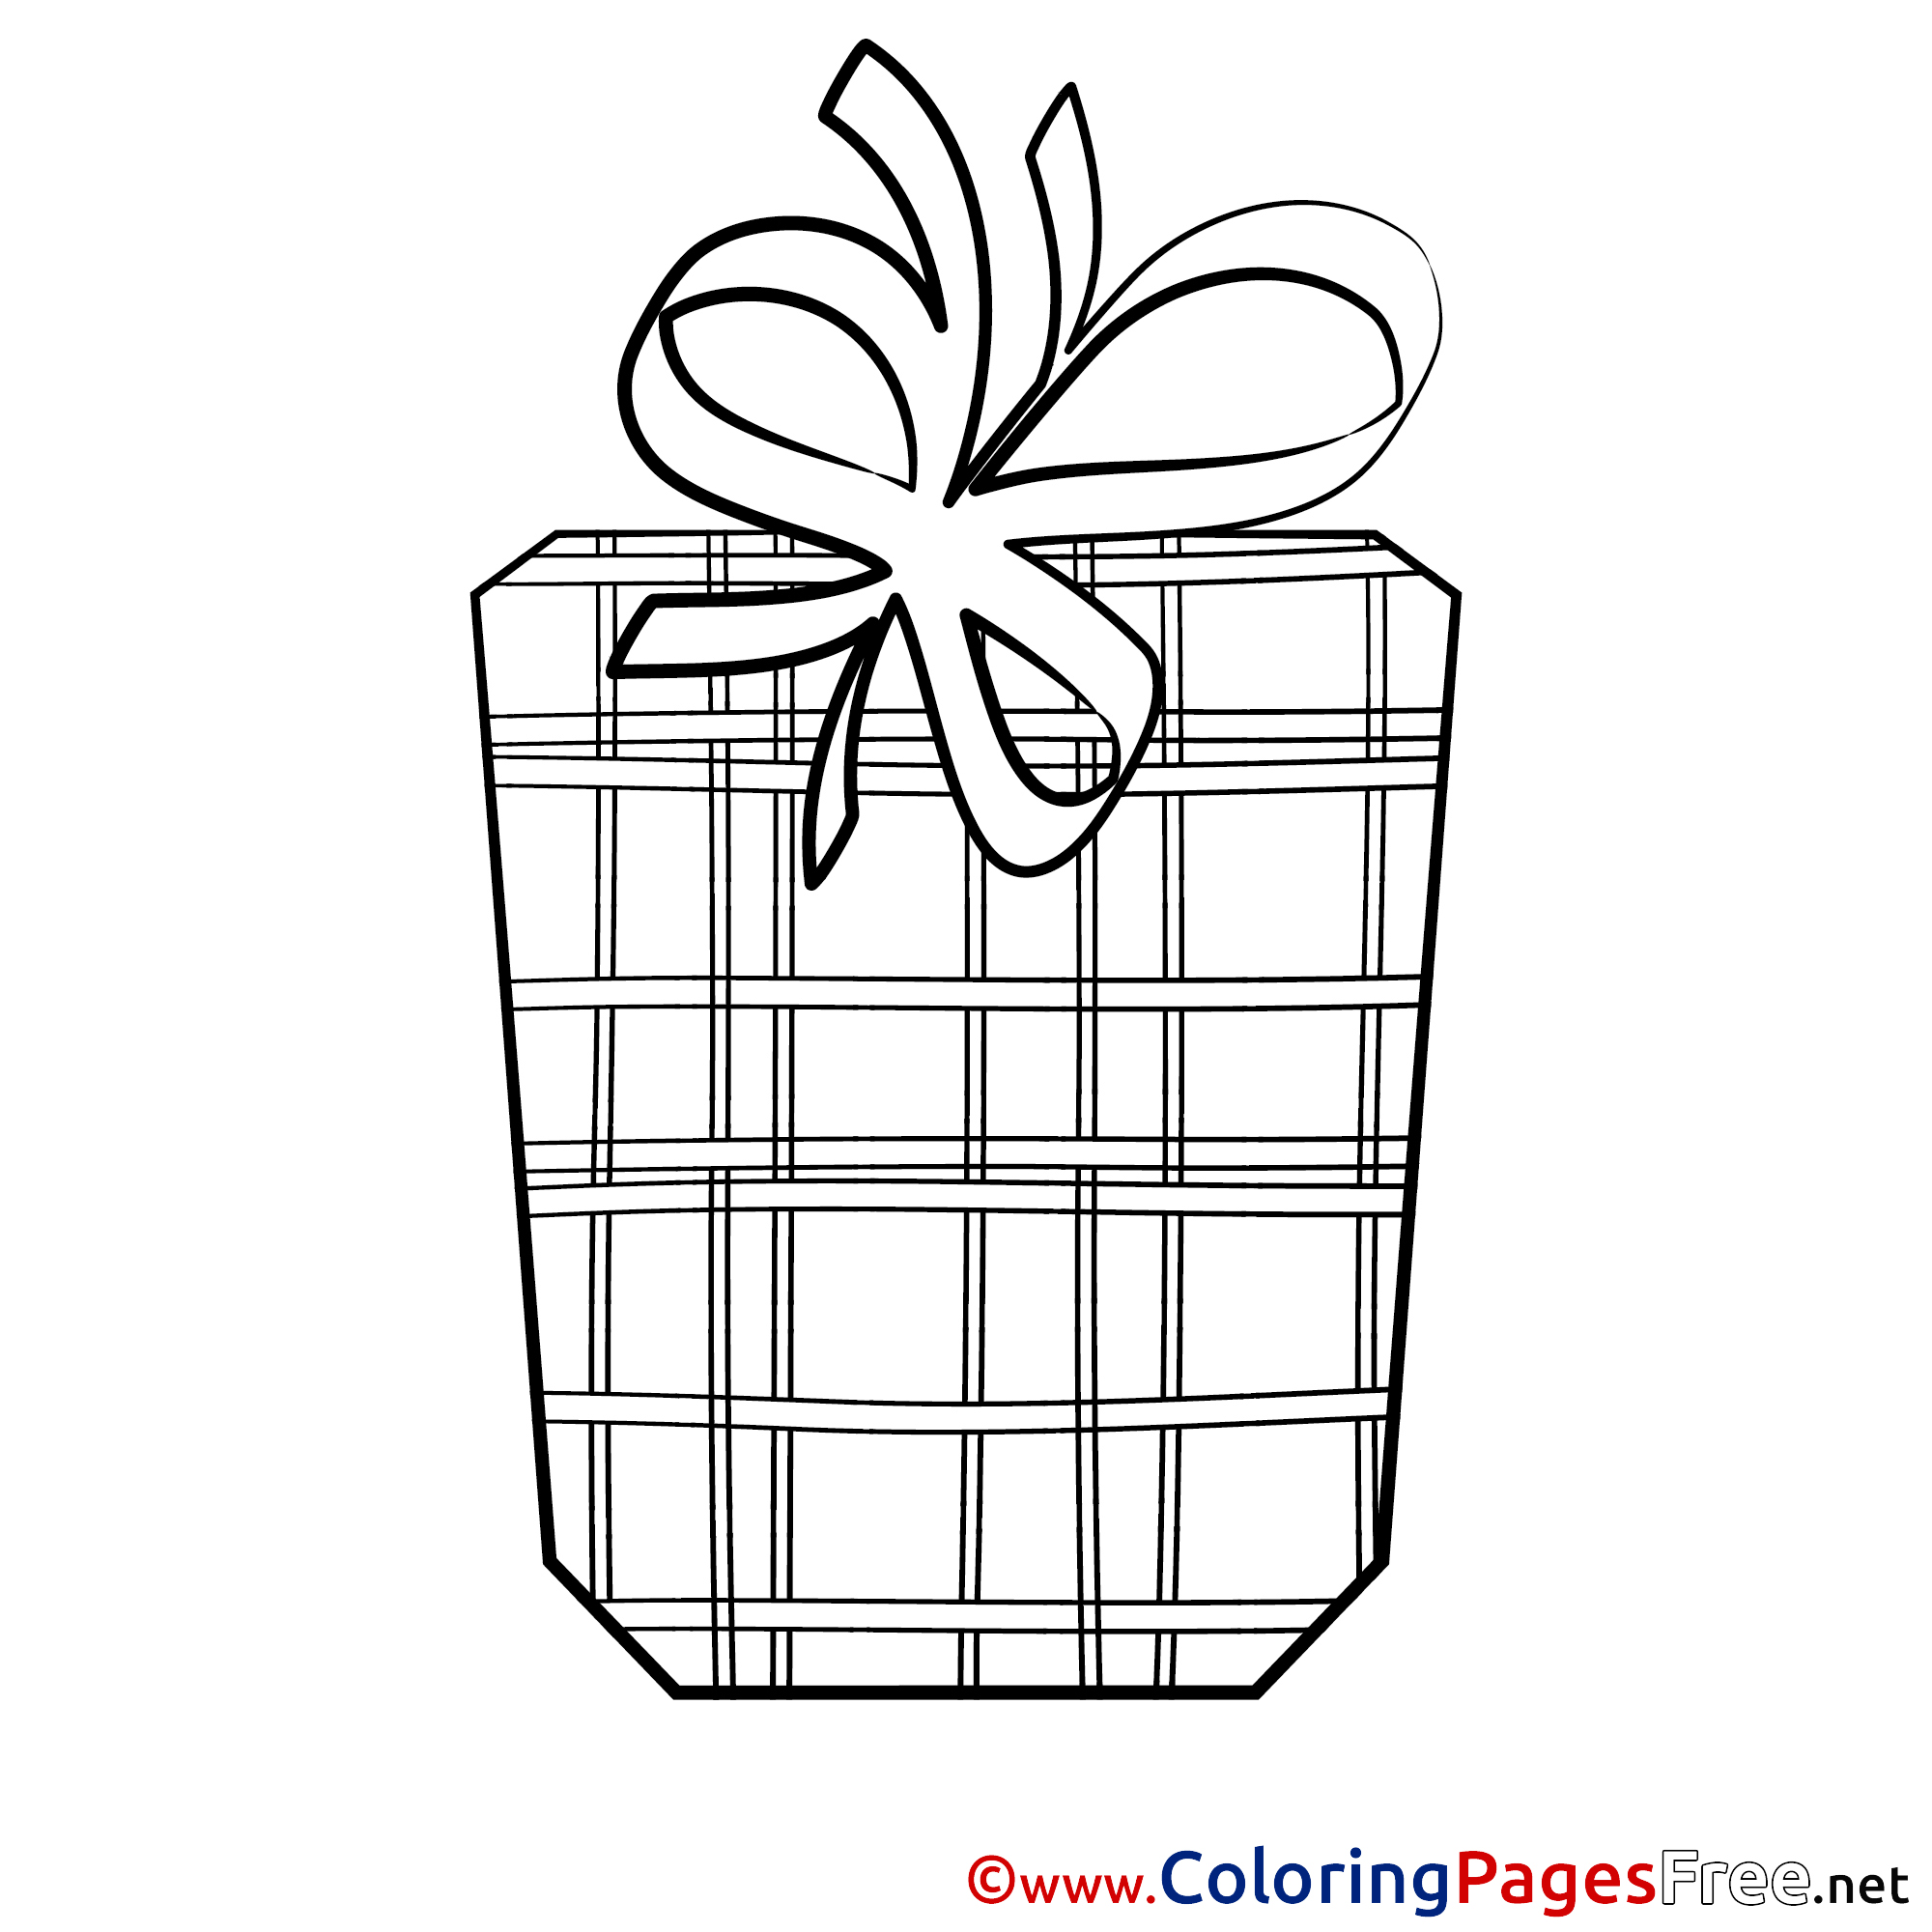 Springfield Nuclear Power Plant Coloring Page Coloring Pages